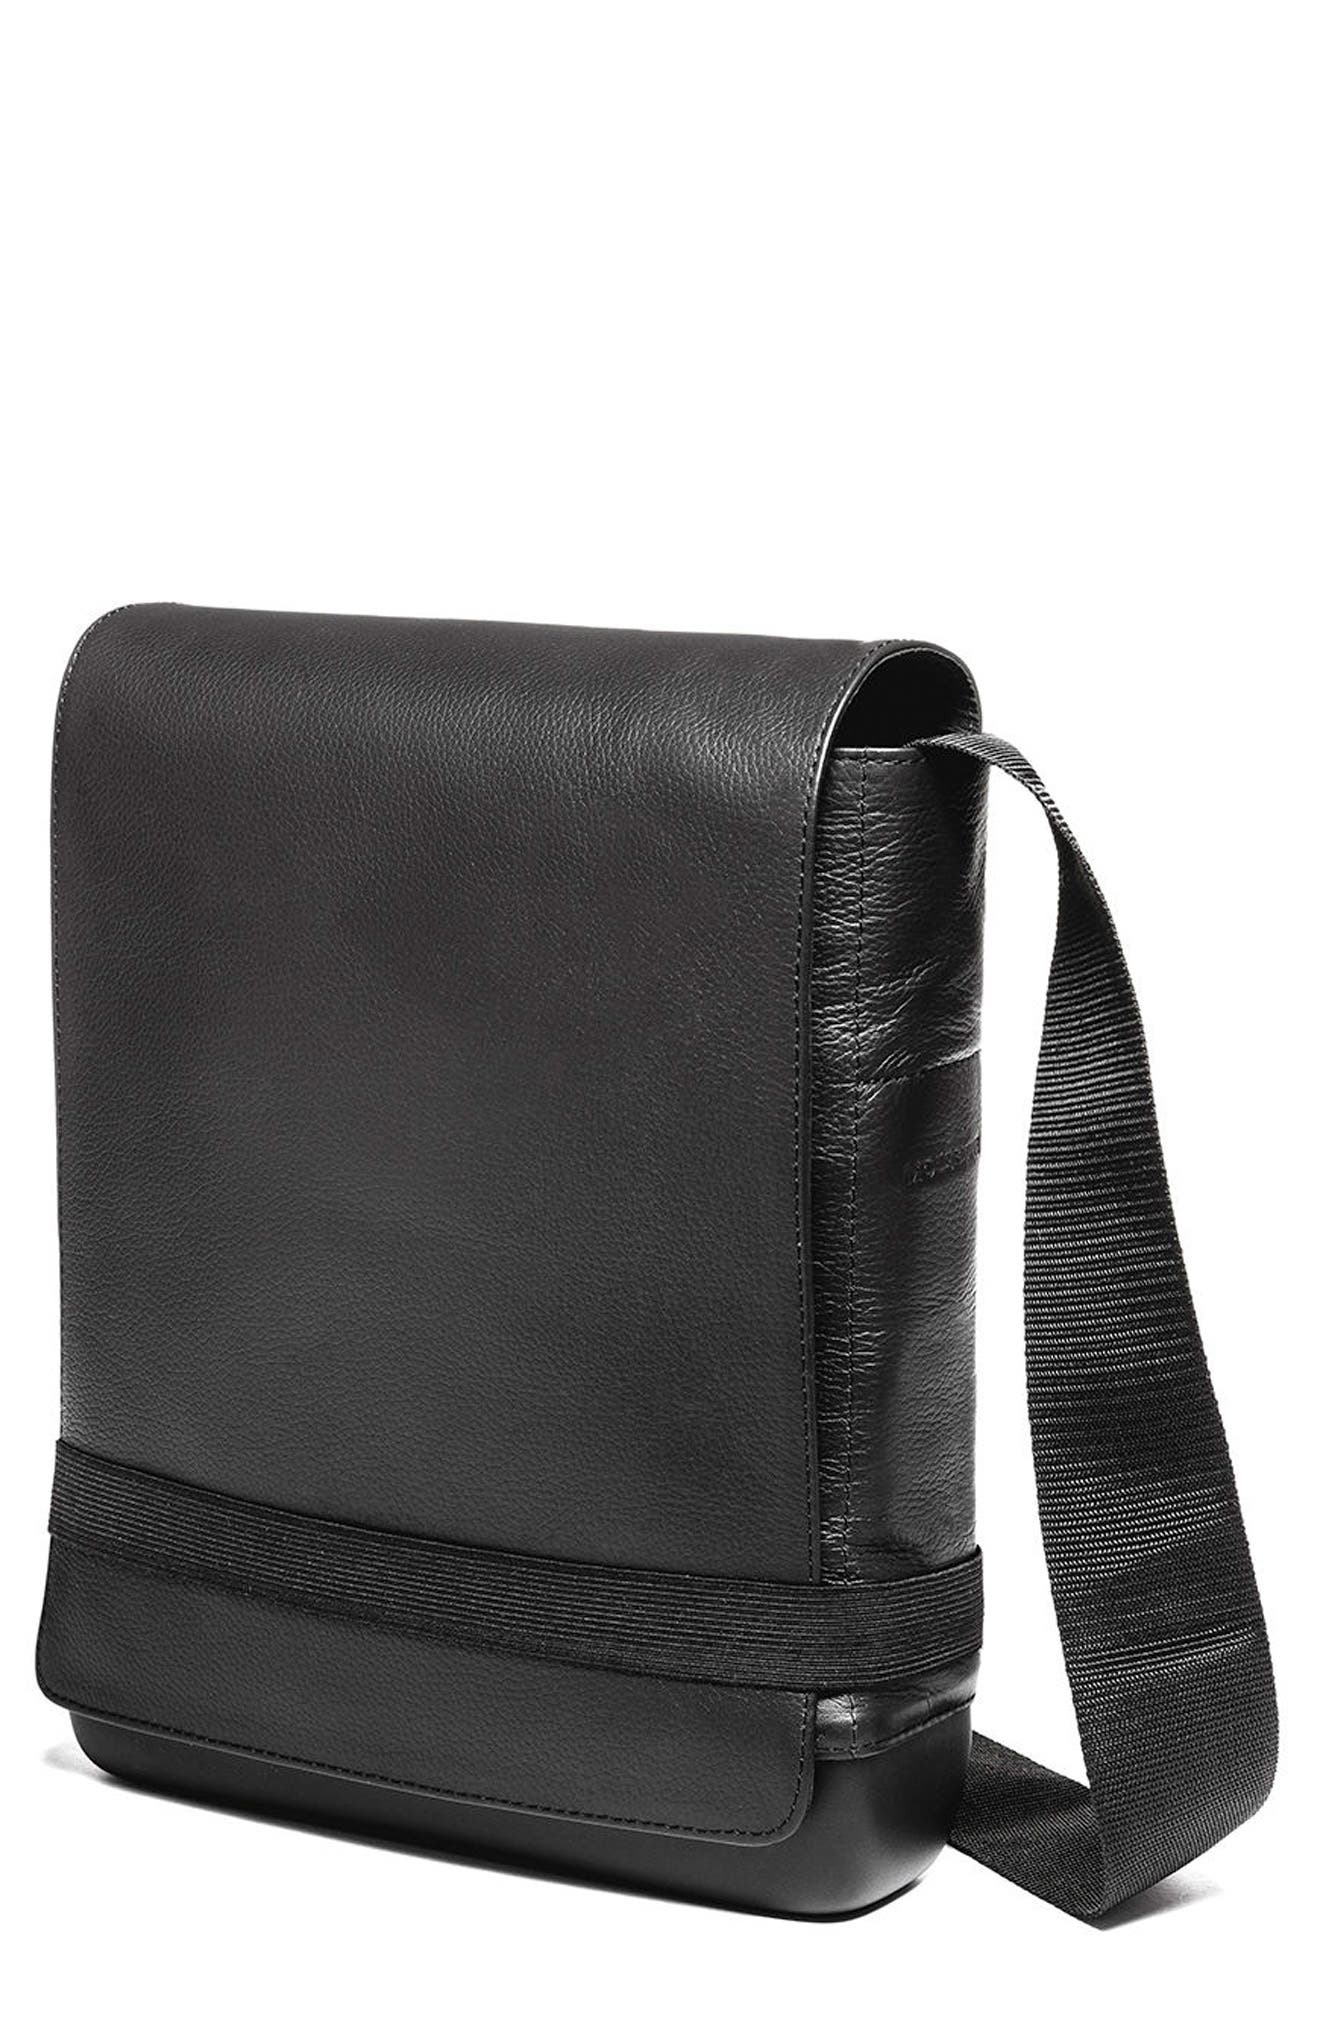 Leather Reporter Bag,                         Main,                         color, 001